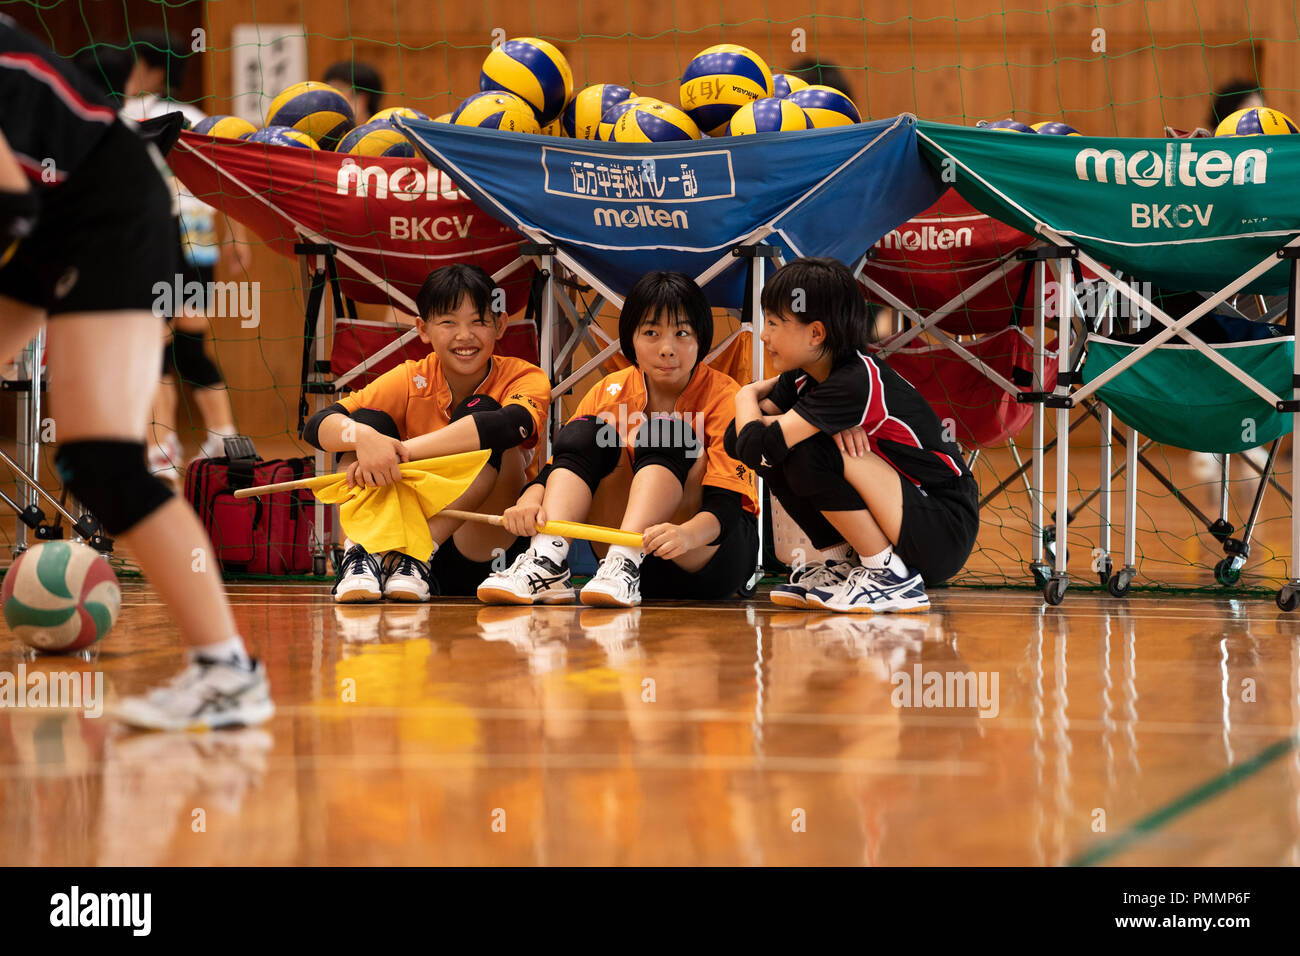 Volleyball (Junior High School Student) - Stock Image